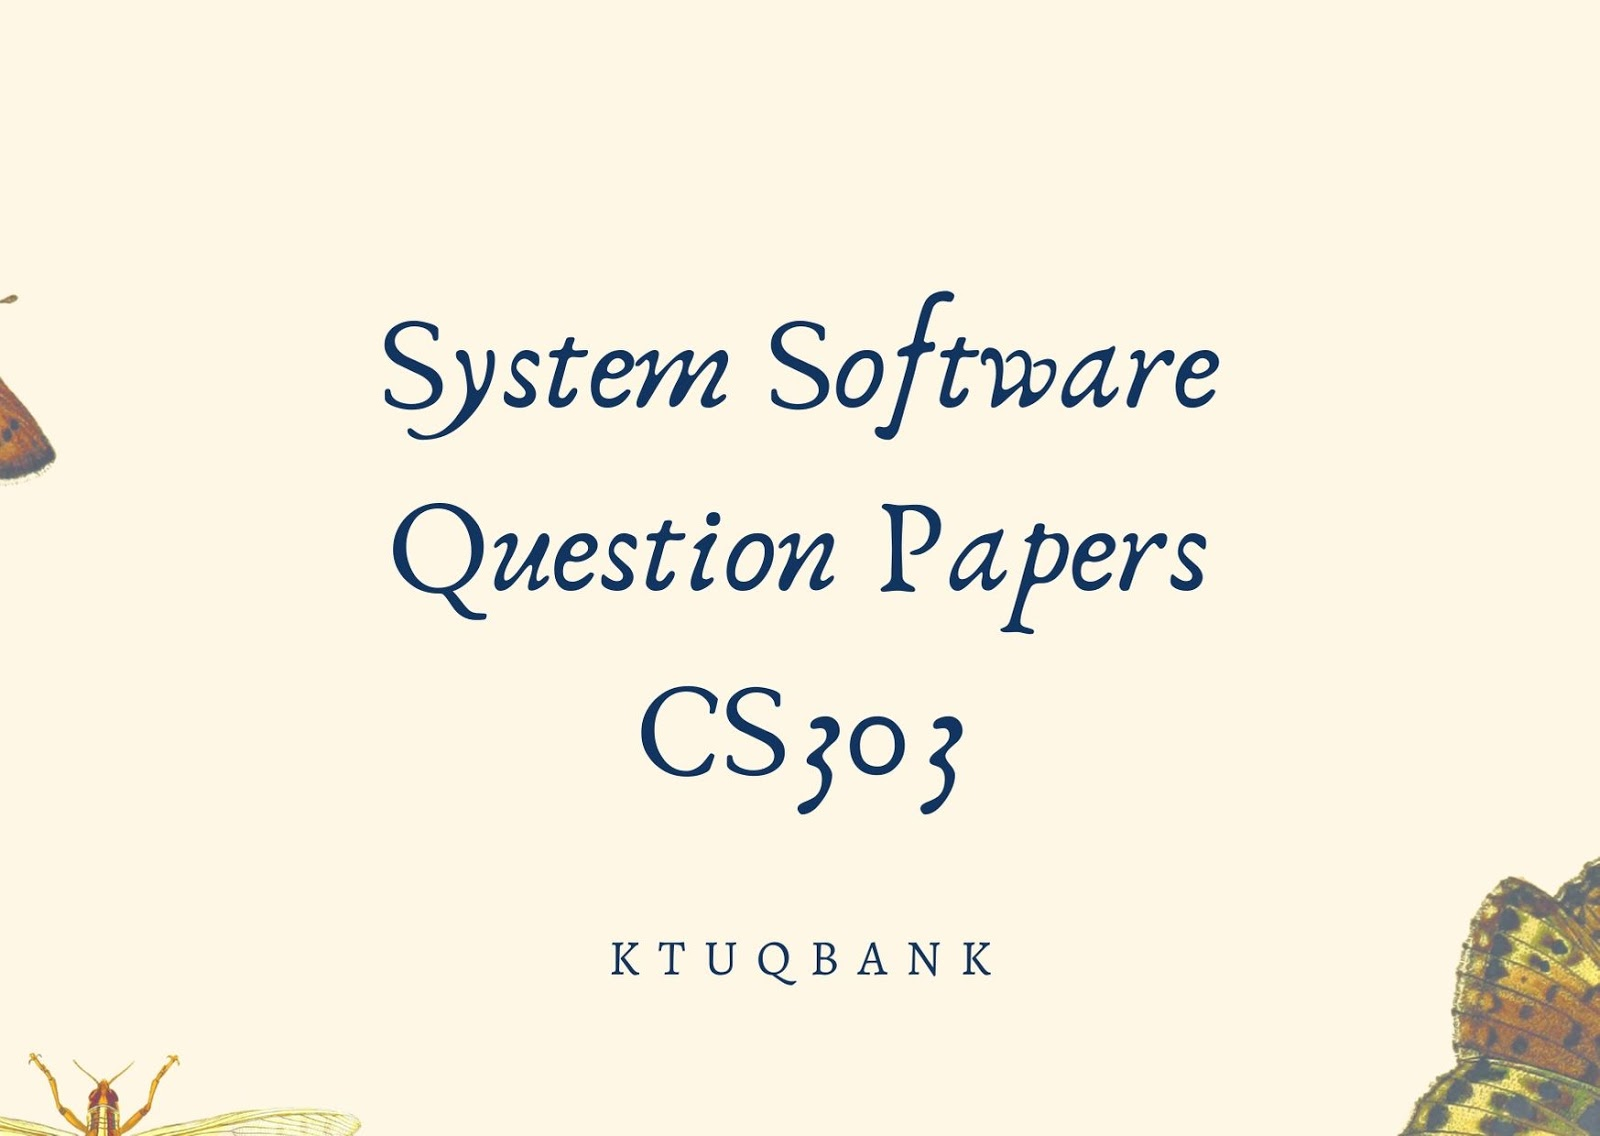 System Software | CS303 | Question Papers (2015 batch)